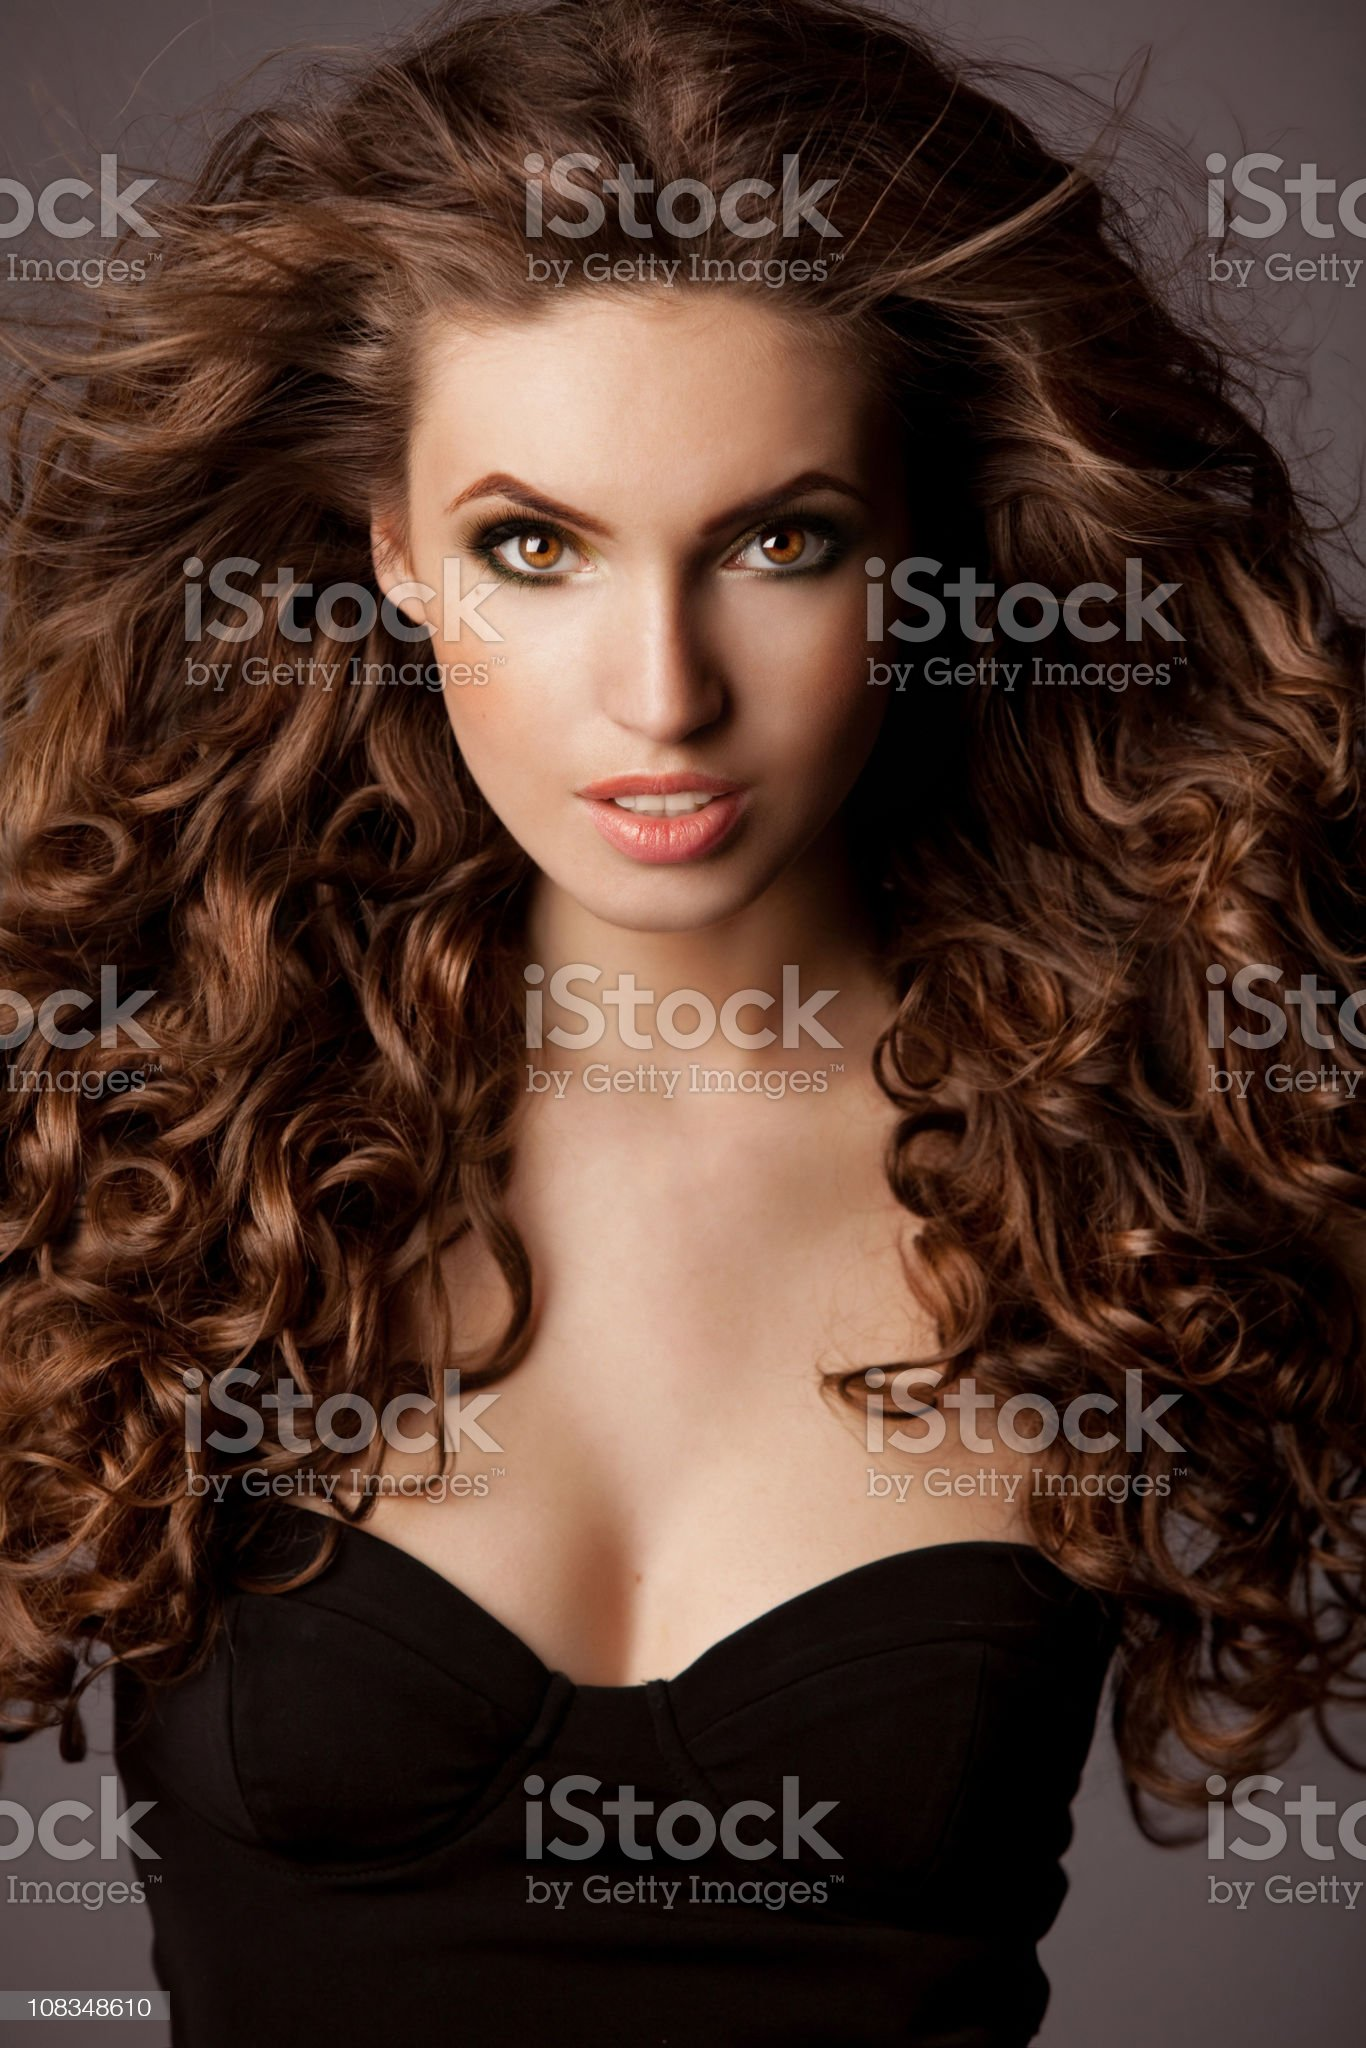 Beautiful woman with luxurious hair royalty-free stock photo